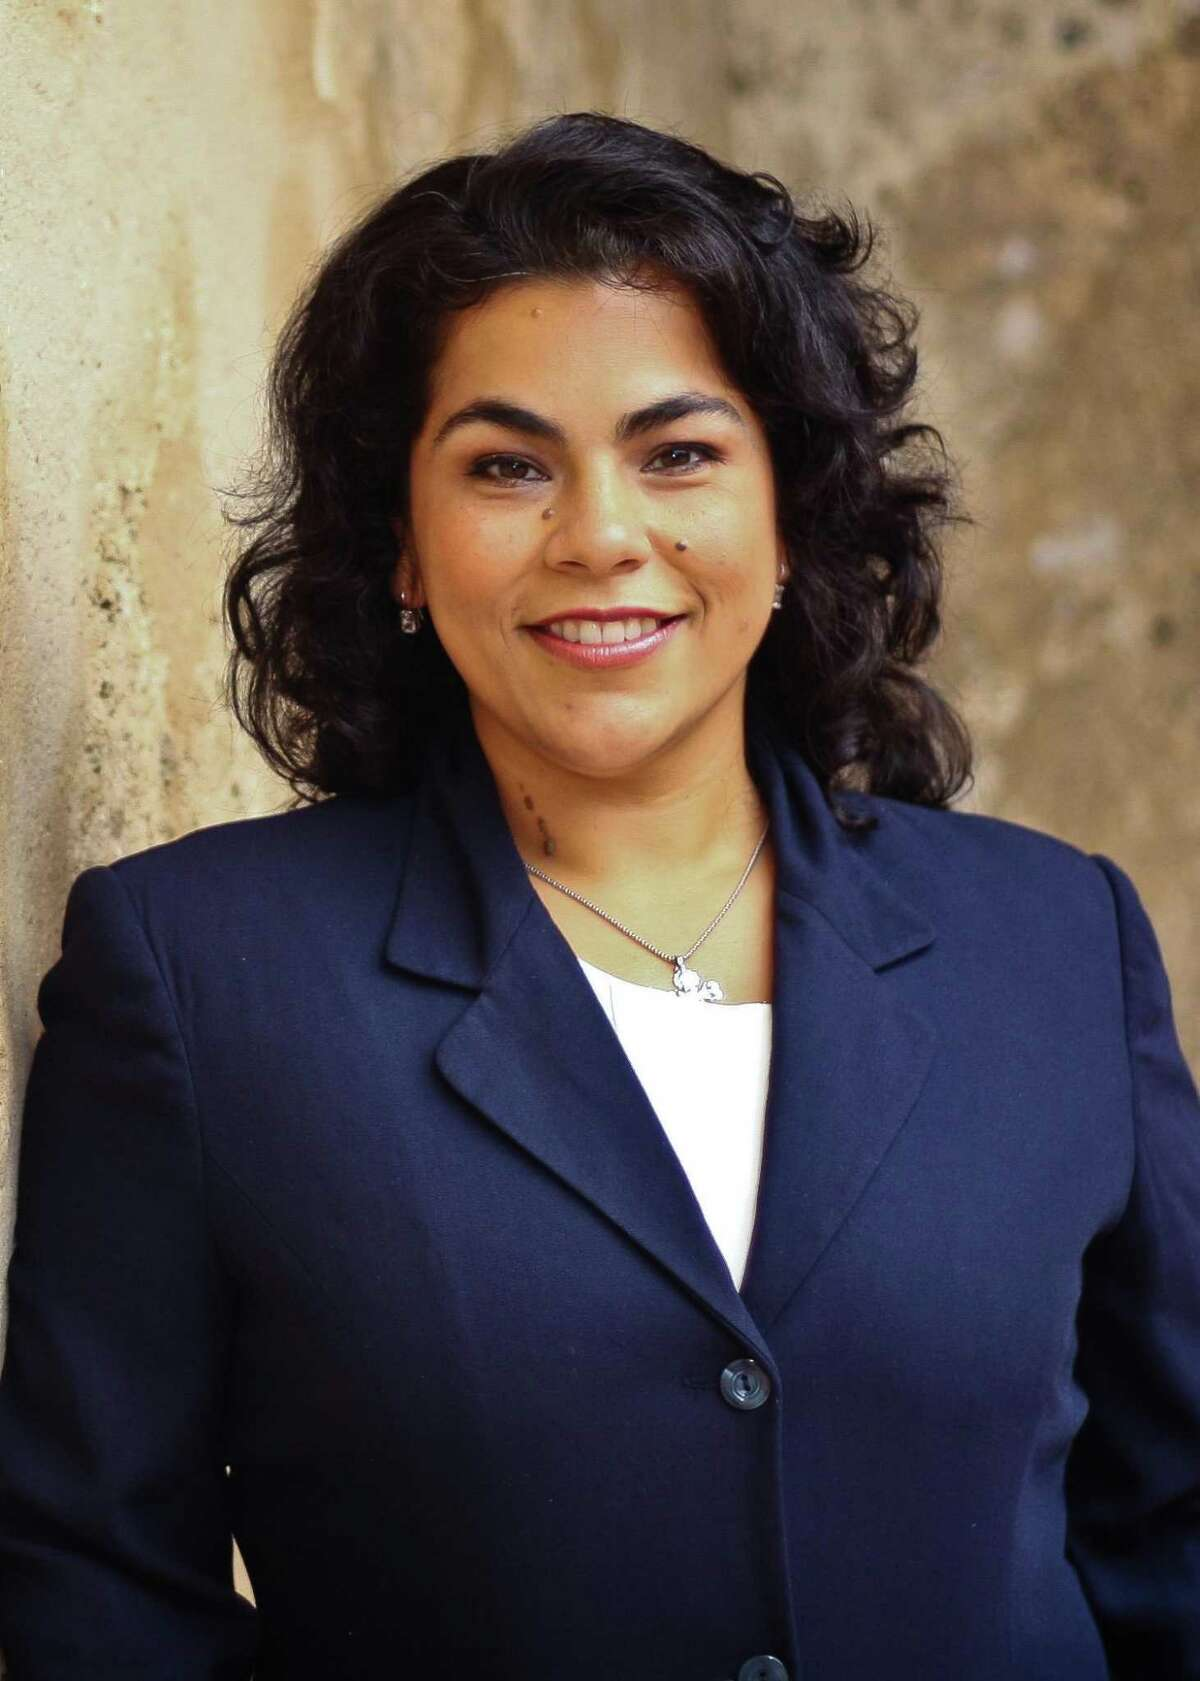 City Councilwoman Rebecca Viagran is seeking her fourth and final term to represent District 3 in the May 4 general election. Viagran was first elected to City Council in 2013.